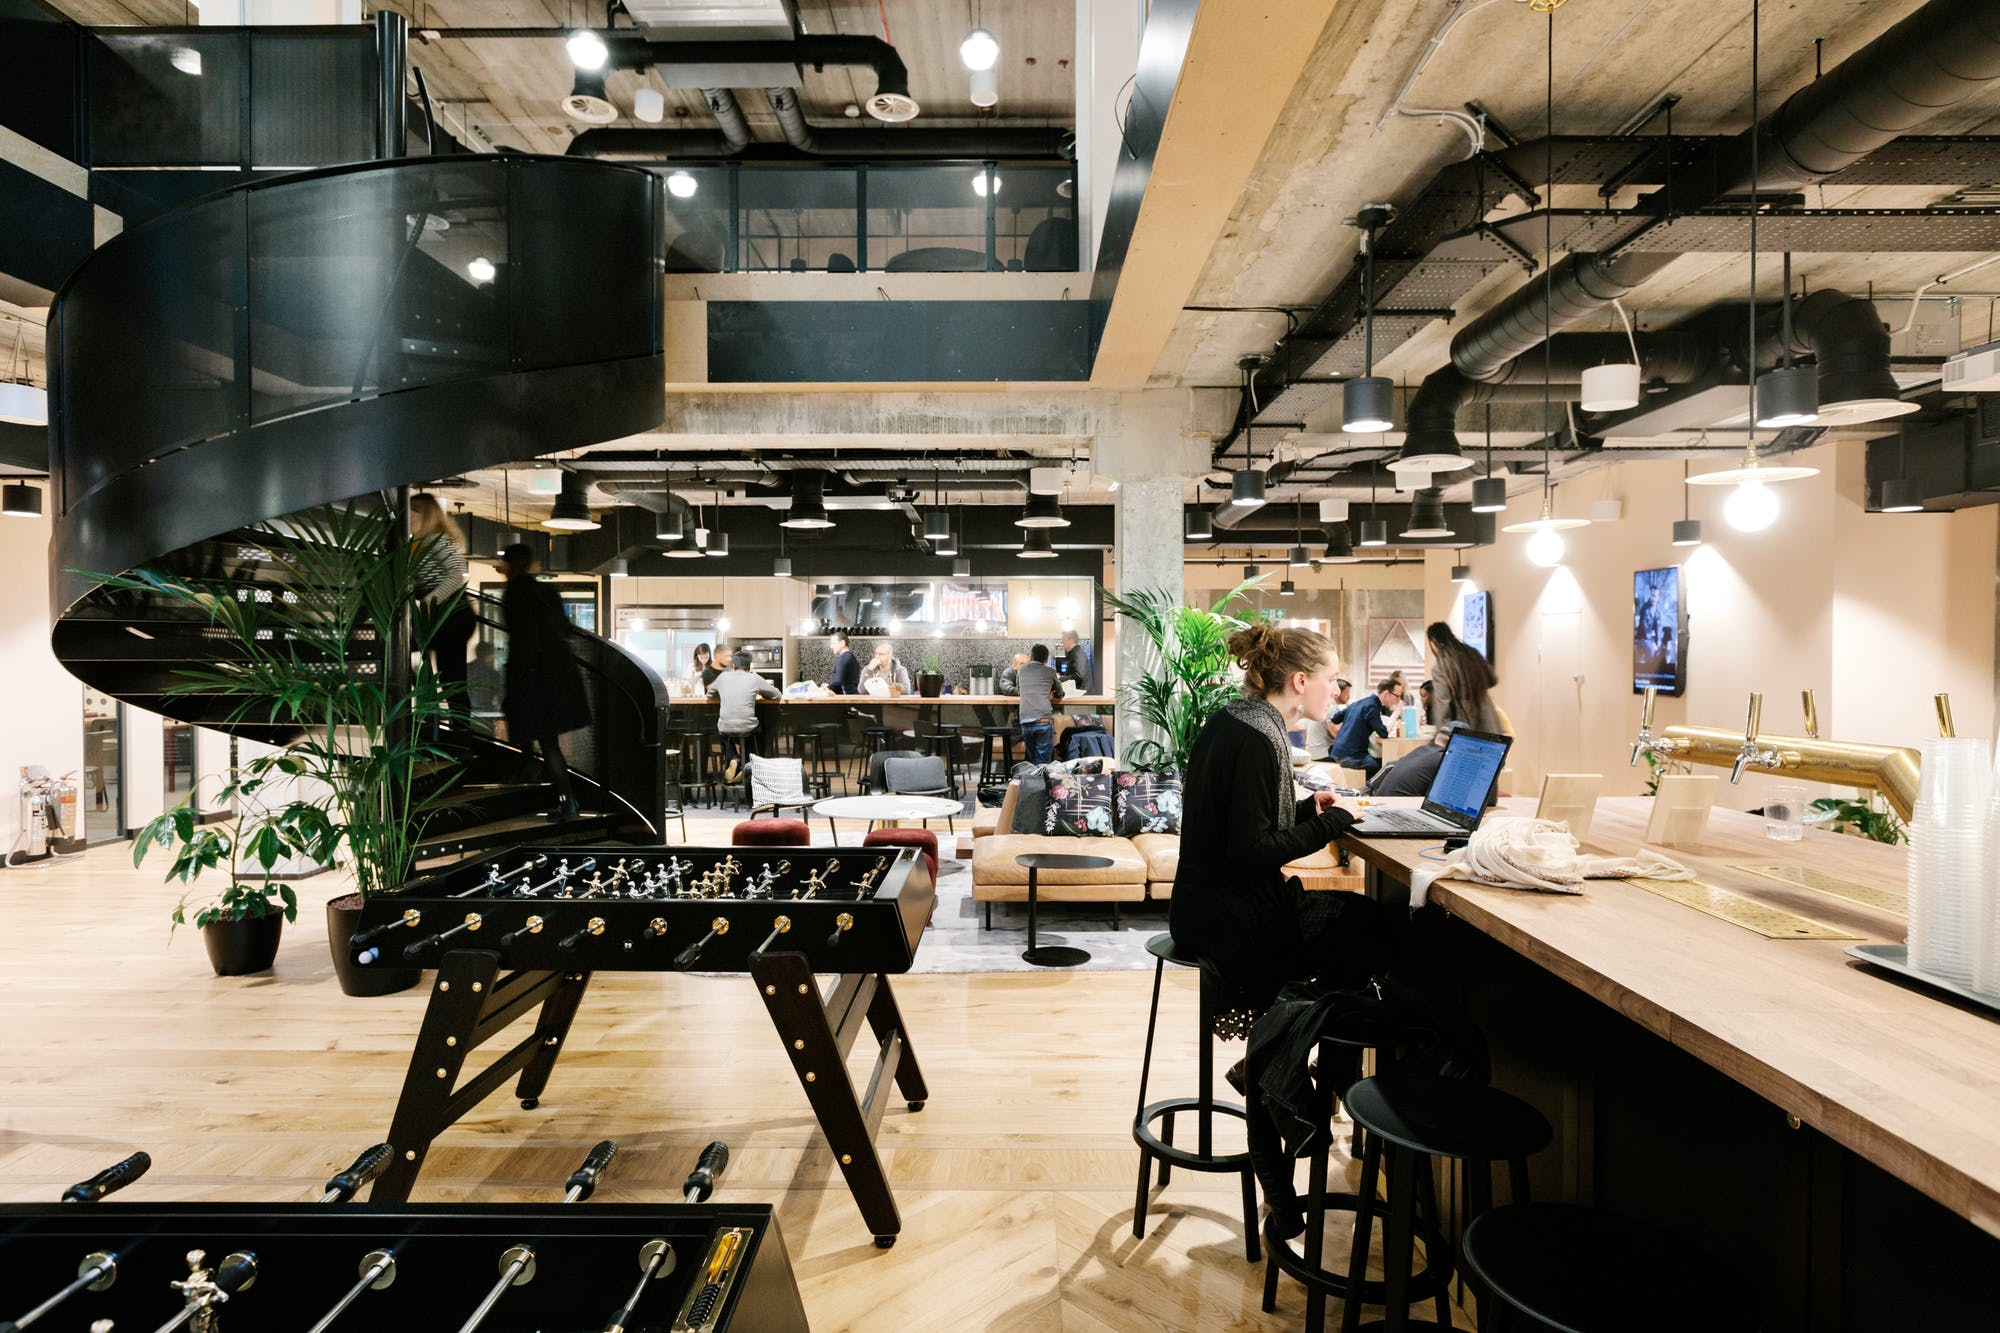 WeWork Shoreditch Mark Square, London